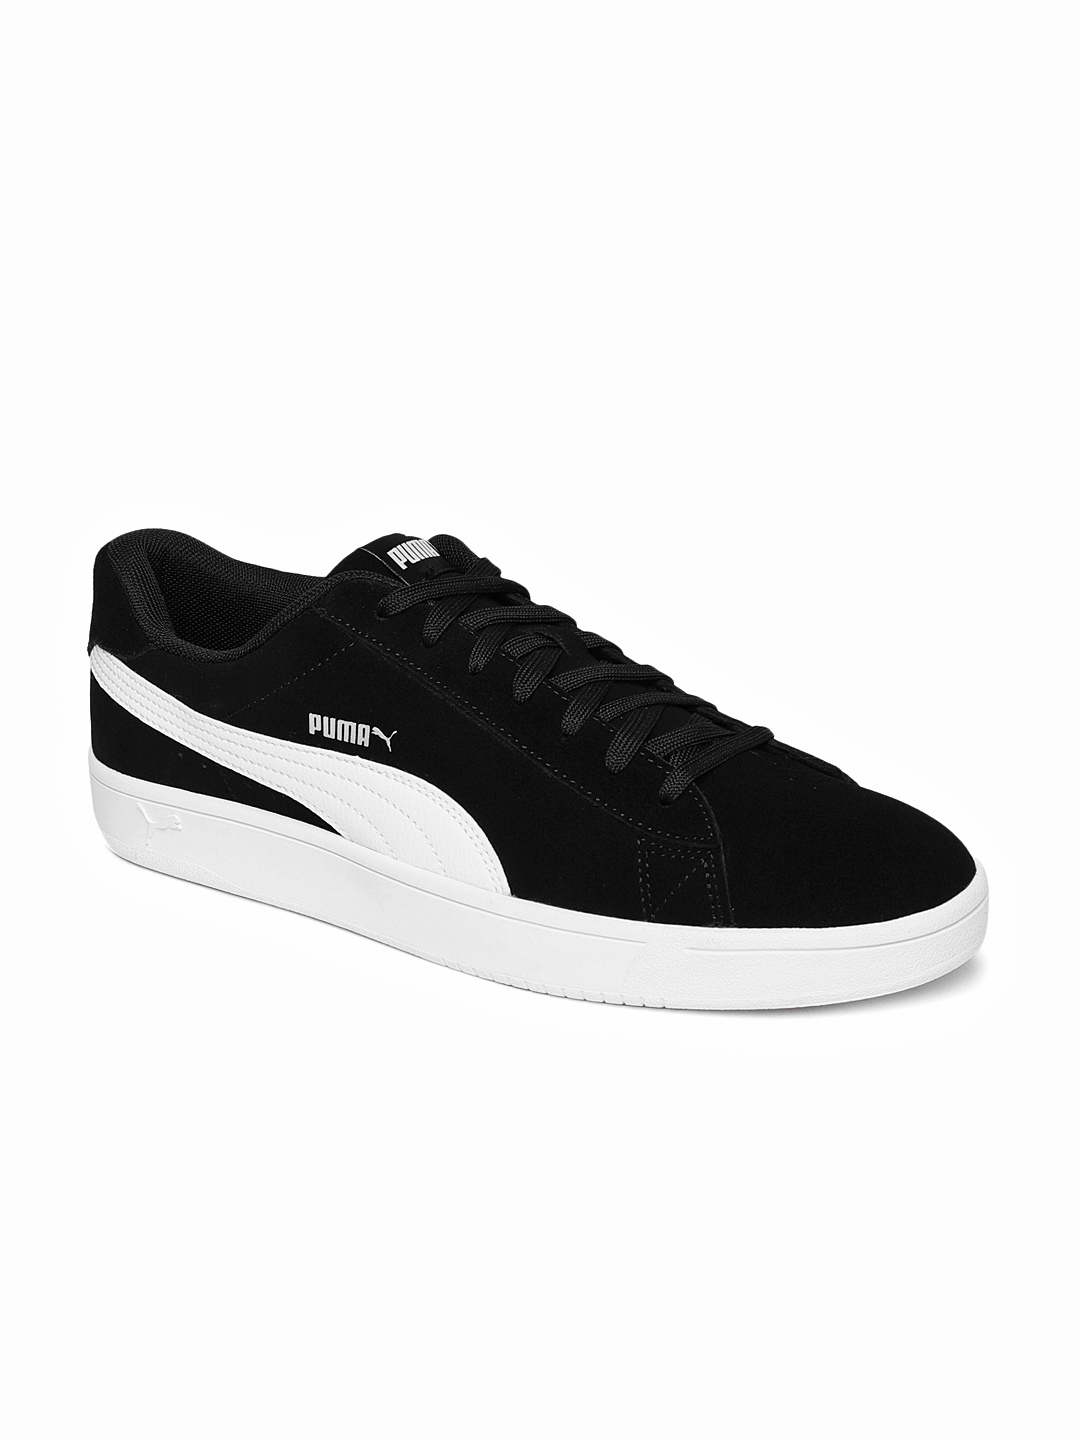 4d000b04f378 Buy Puma Men Black Court Breaker Suede Sneakers - Casual Shoes for ...